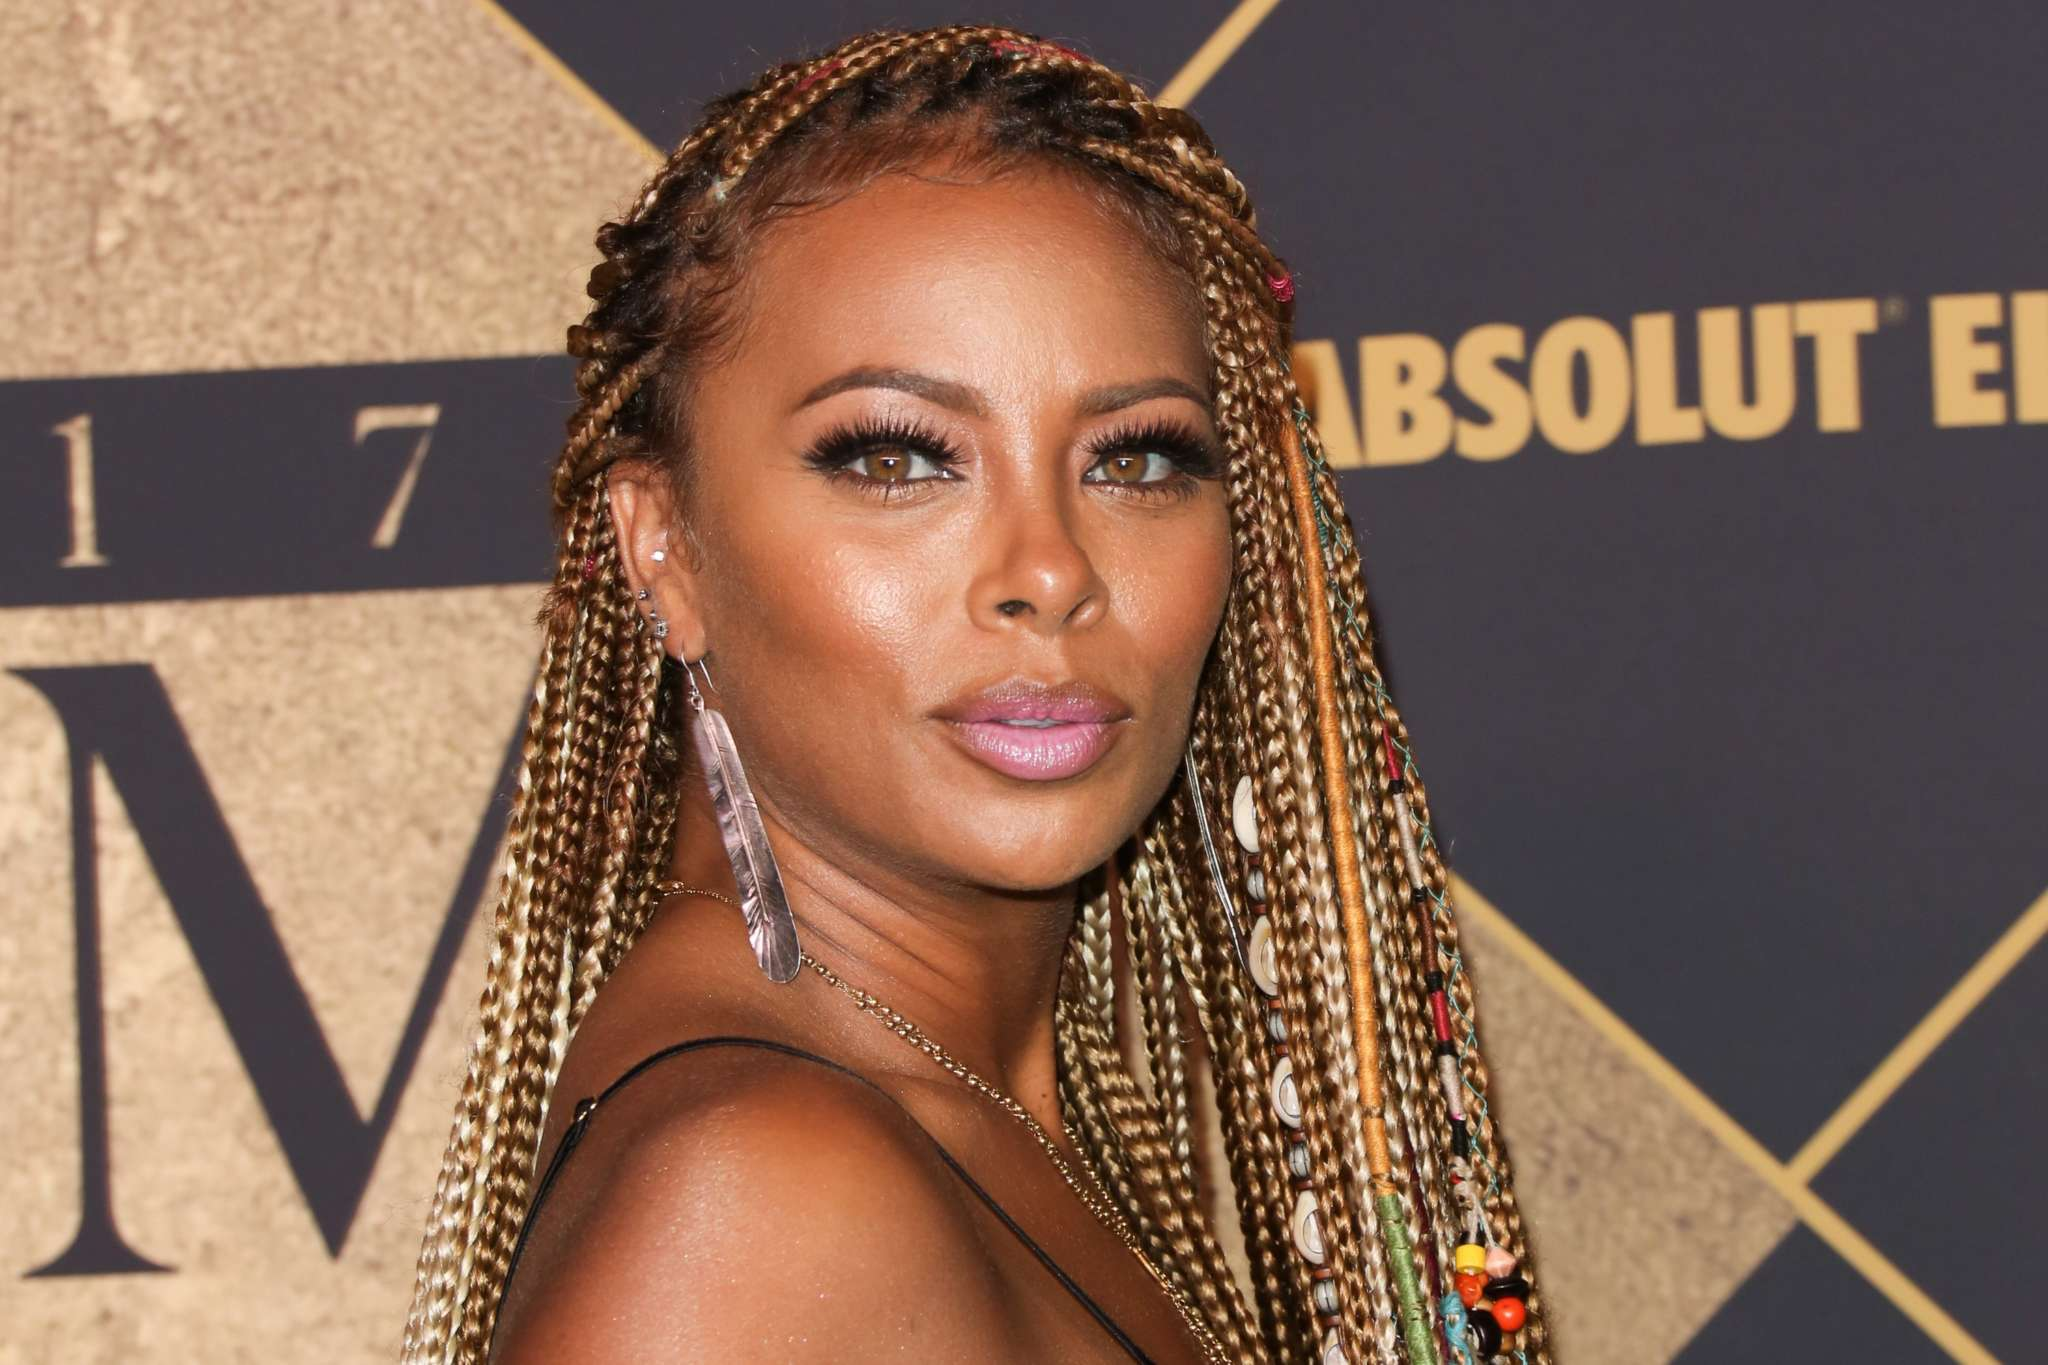 Eva Marcille Takes Fans Down The Memory Lane With This Throwback Video